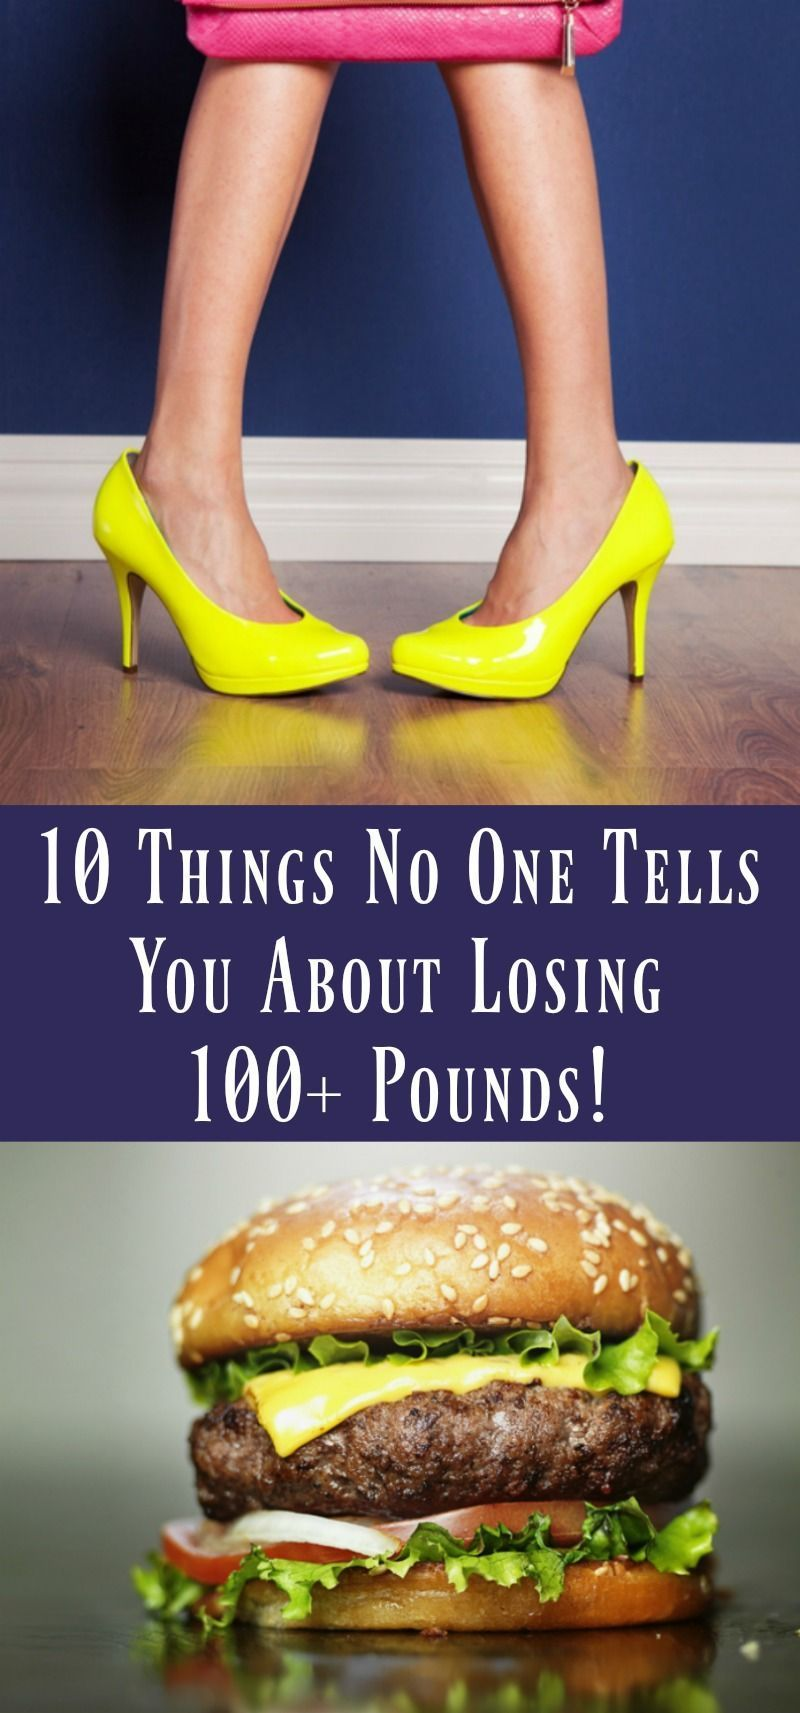 Weight loss tips quick results #easyweightloss  | tricks to help lose weight#weightlossjourney #fitn...